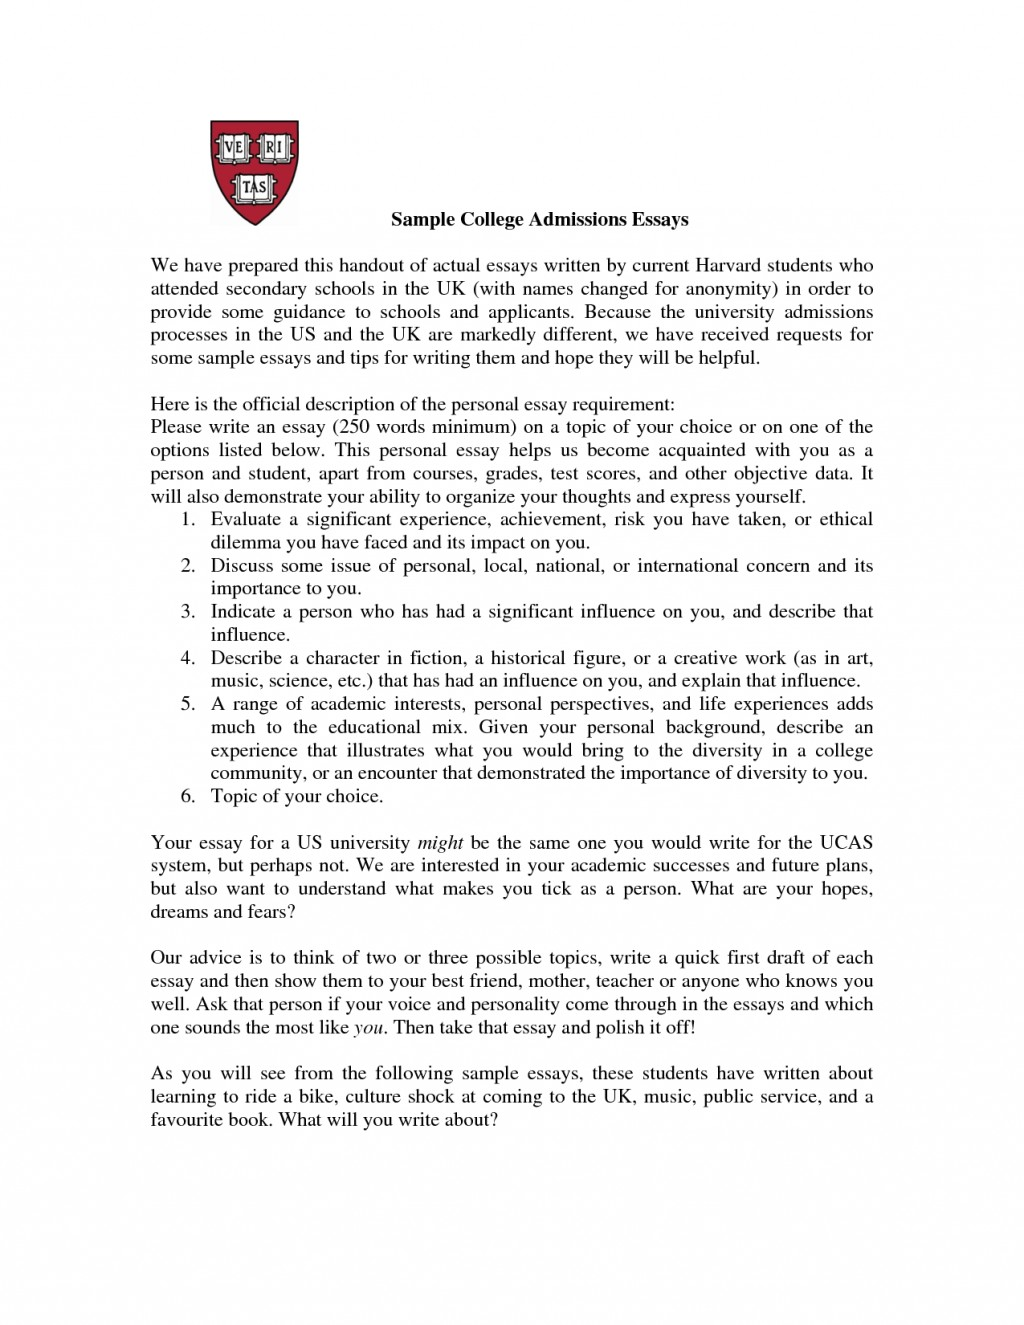 007 How To Write College Entrance Essay Dpy4cpaqnd Striking A Good Introduction For Application Admissions Successful Large